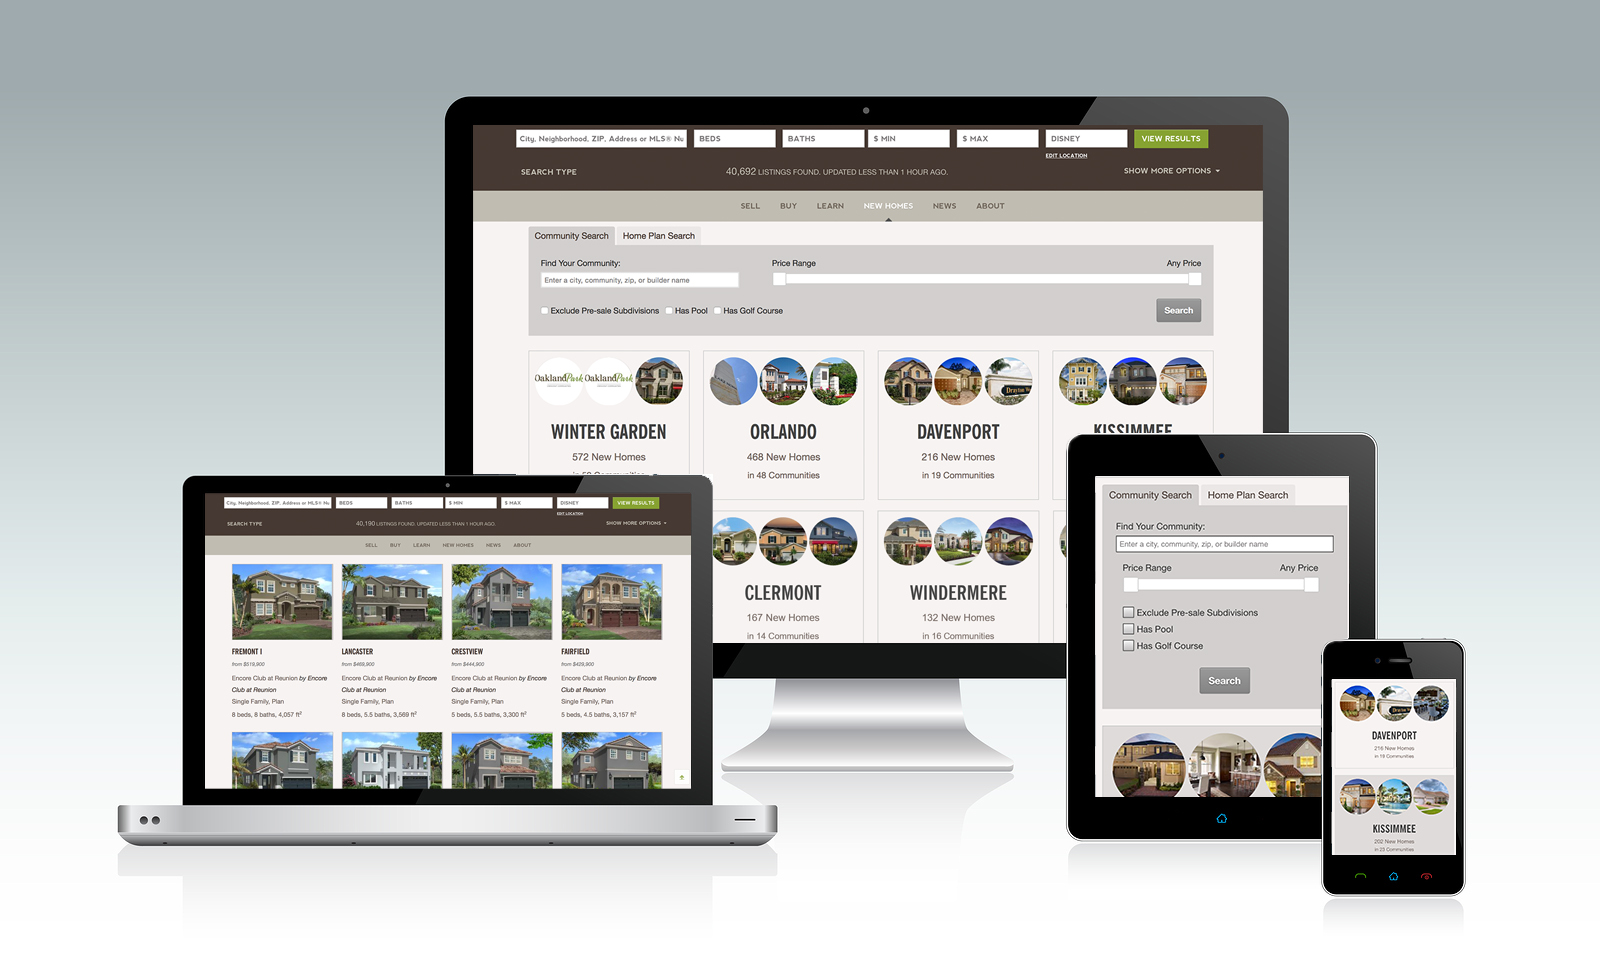 Browse New Homes On Any Device Through The Website